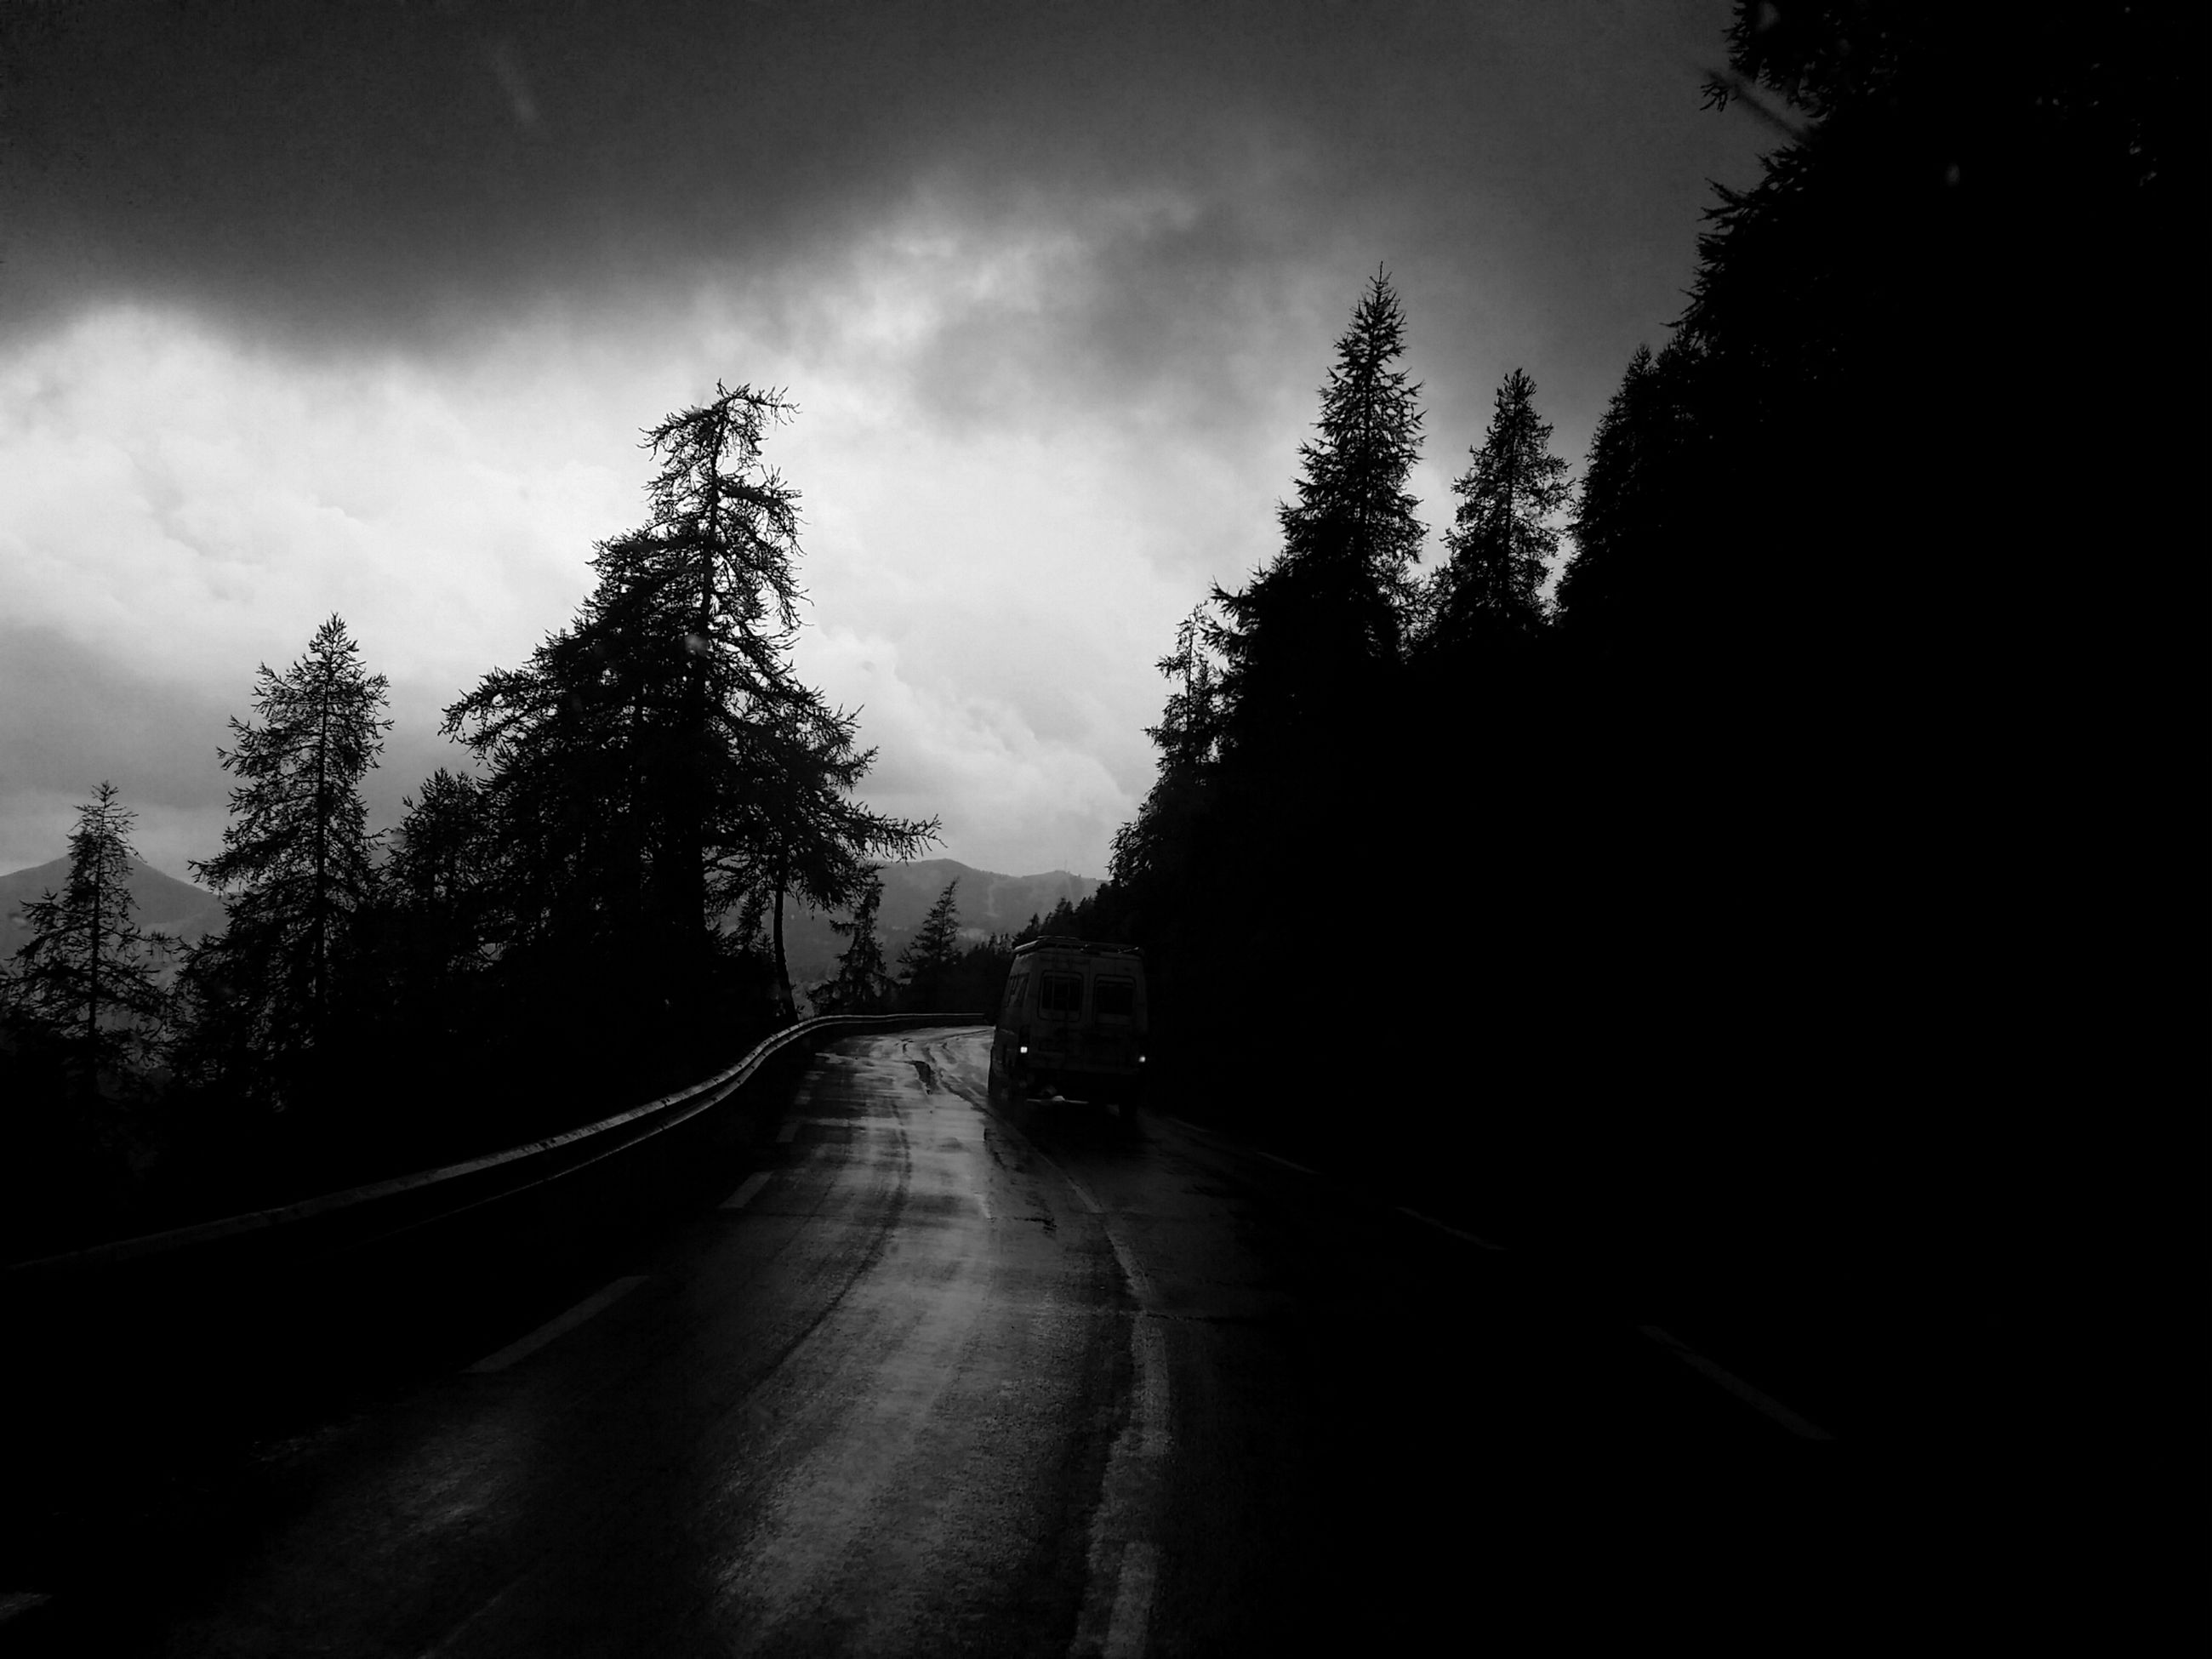 tree, silhouette, road, transportation, sky, the way forward, dark, diminishing perspective, cloud - sky, vanishing point, outdoors, day, cloudy, outline, long, solitude, country road, tranquil scene, black and white, no people, tranquility, footpath